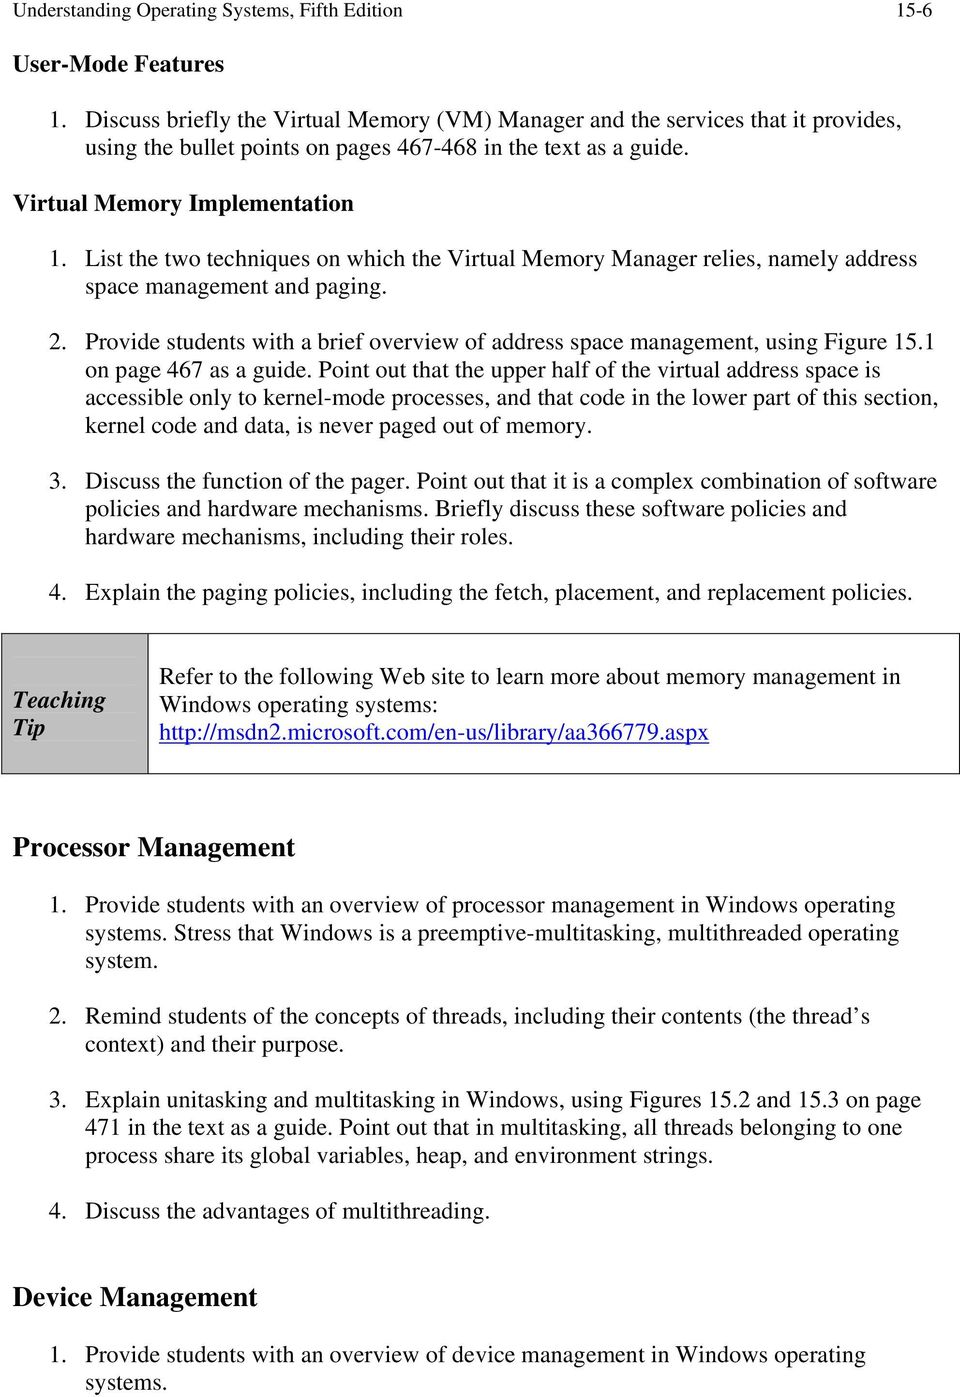 List the two techniques on which the Virtual Memory Manager relies, namely address space management and paging. 2. Provide students with a brief overview of address space management, using Figure 15.